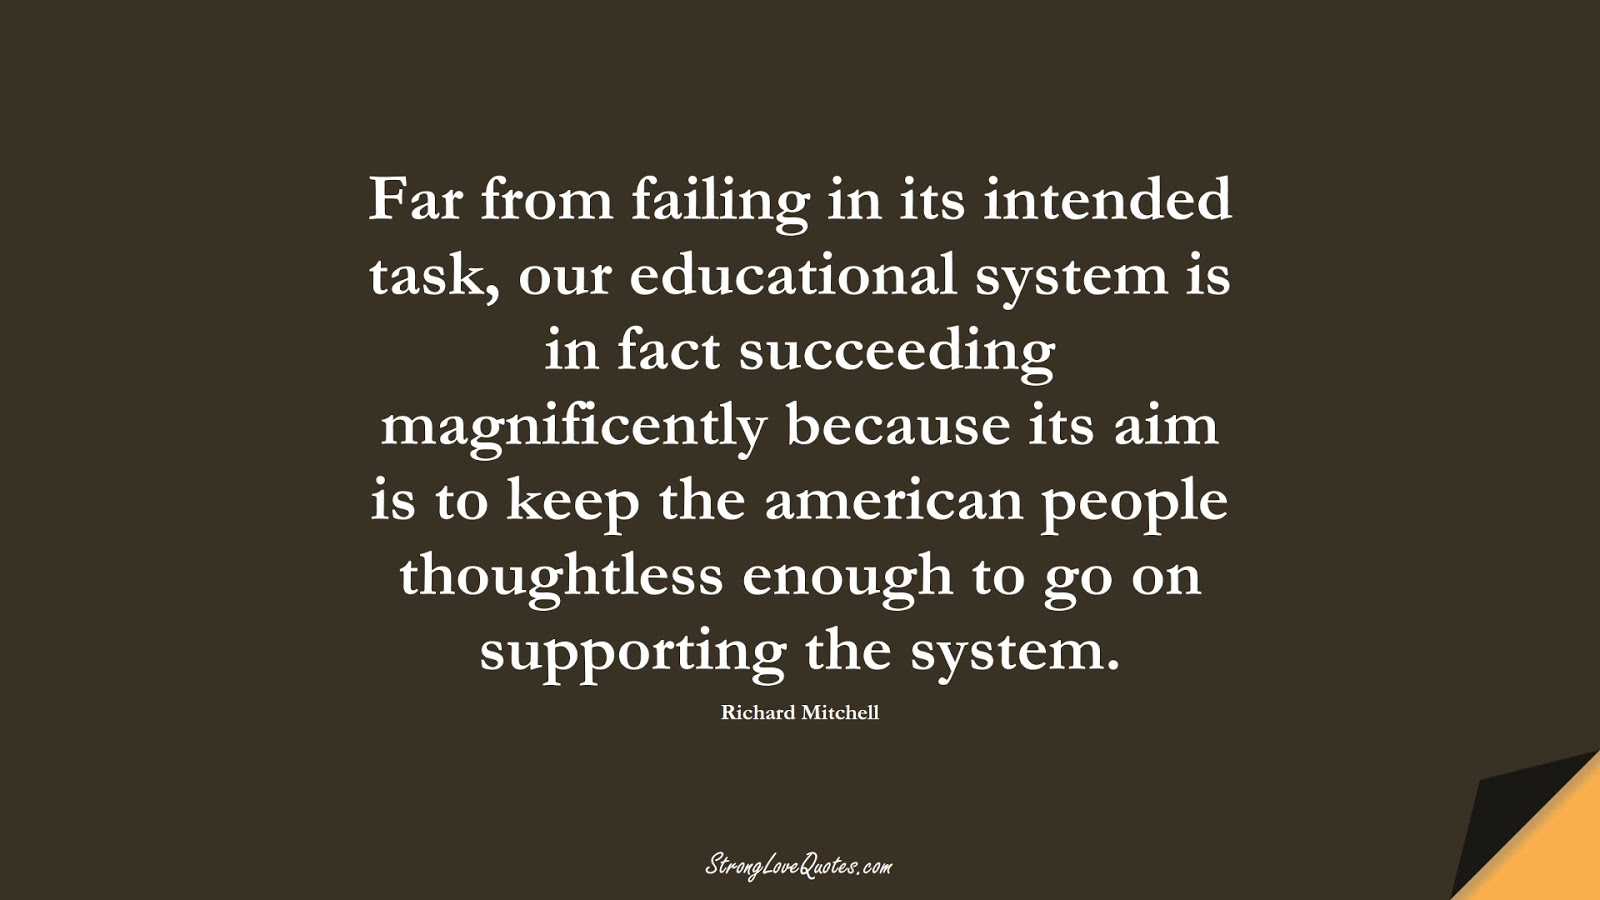 Far from failing in its intended task, our educational system is in fact succeeding magnificently because its aim is to keep the american people thoughtless enough to go on supporting the system. (Richard Mitchell);  #EducationQuotes